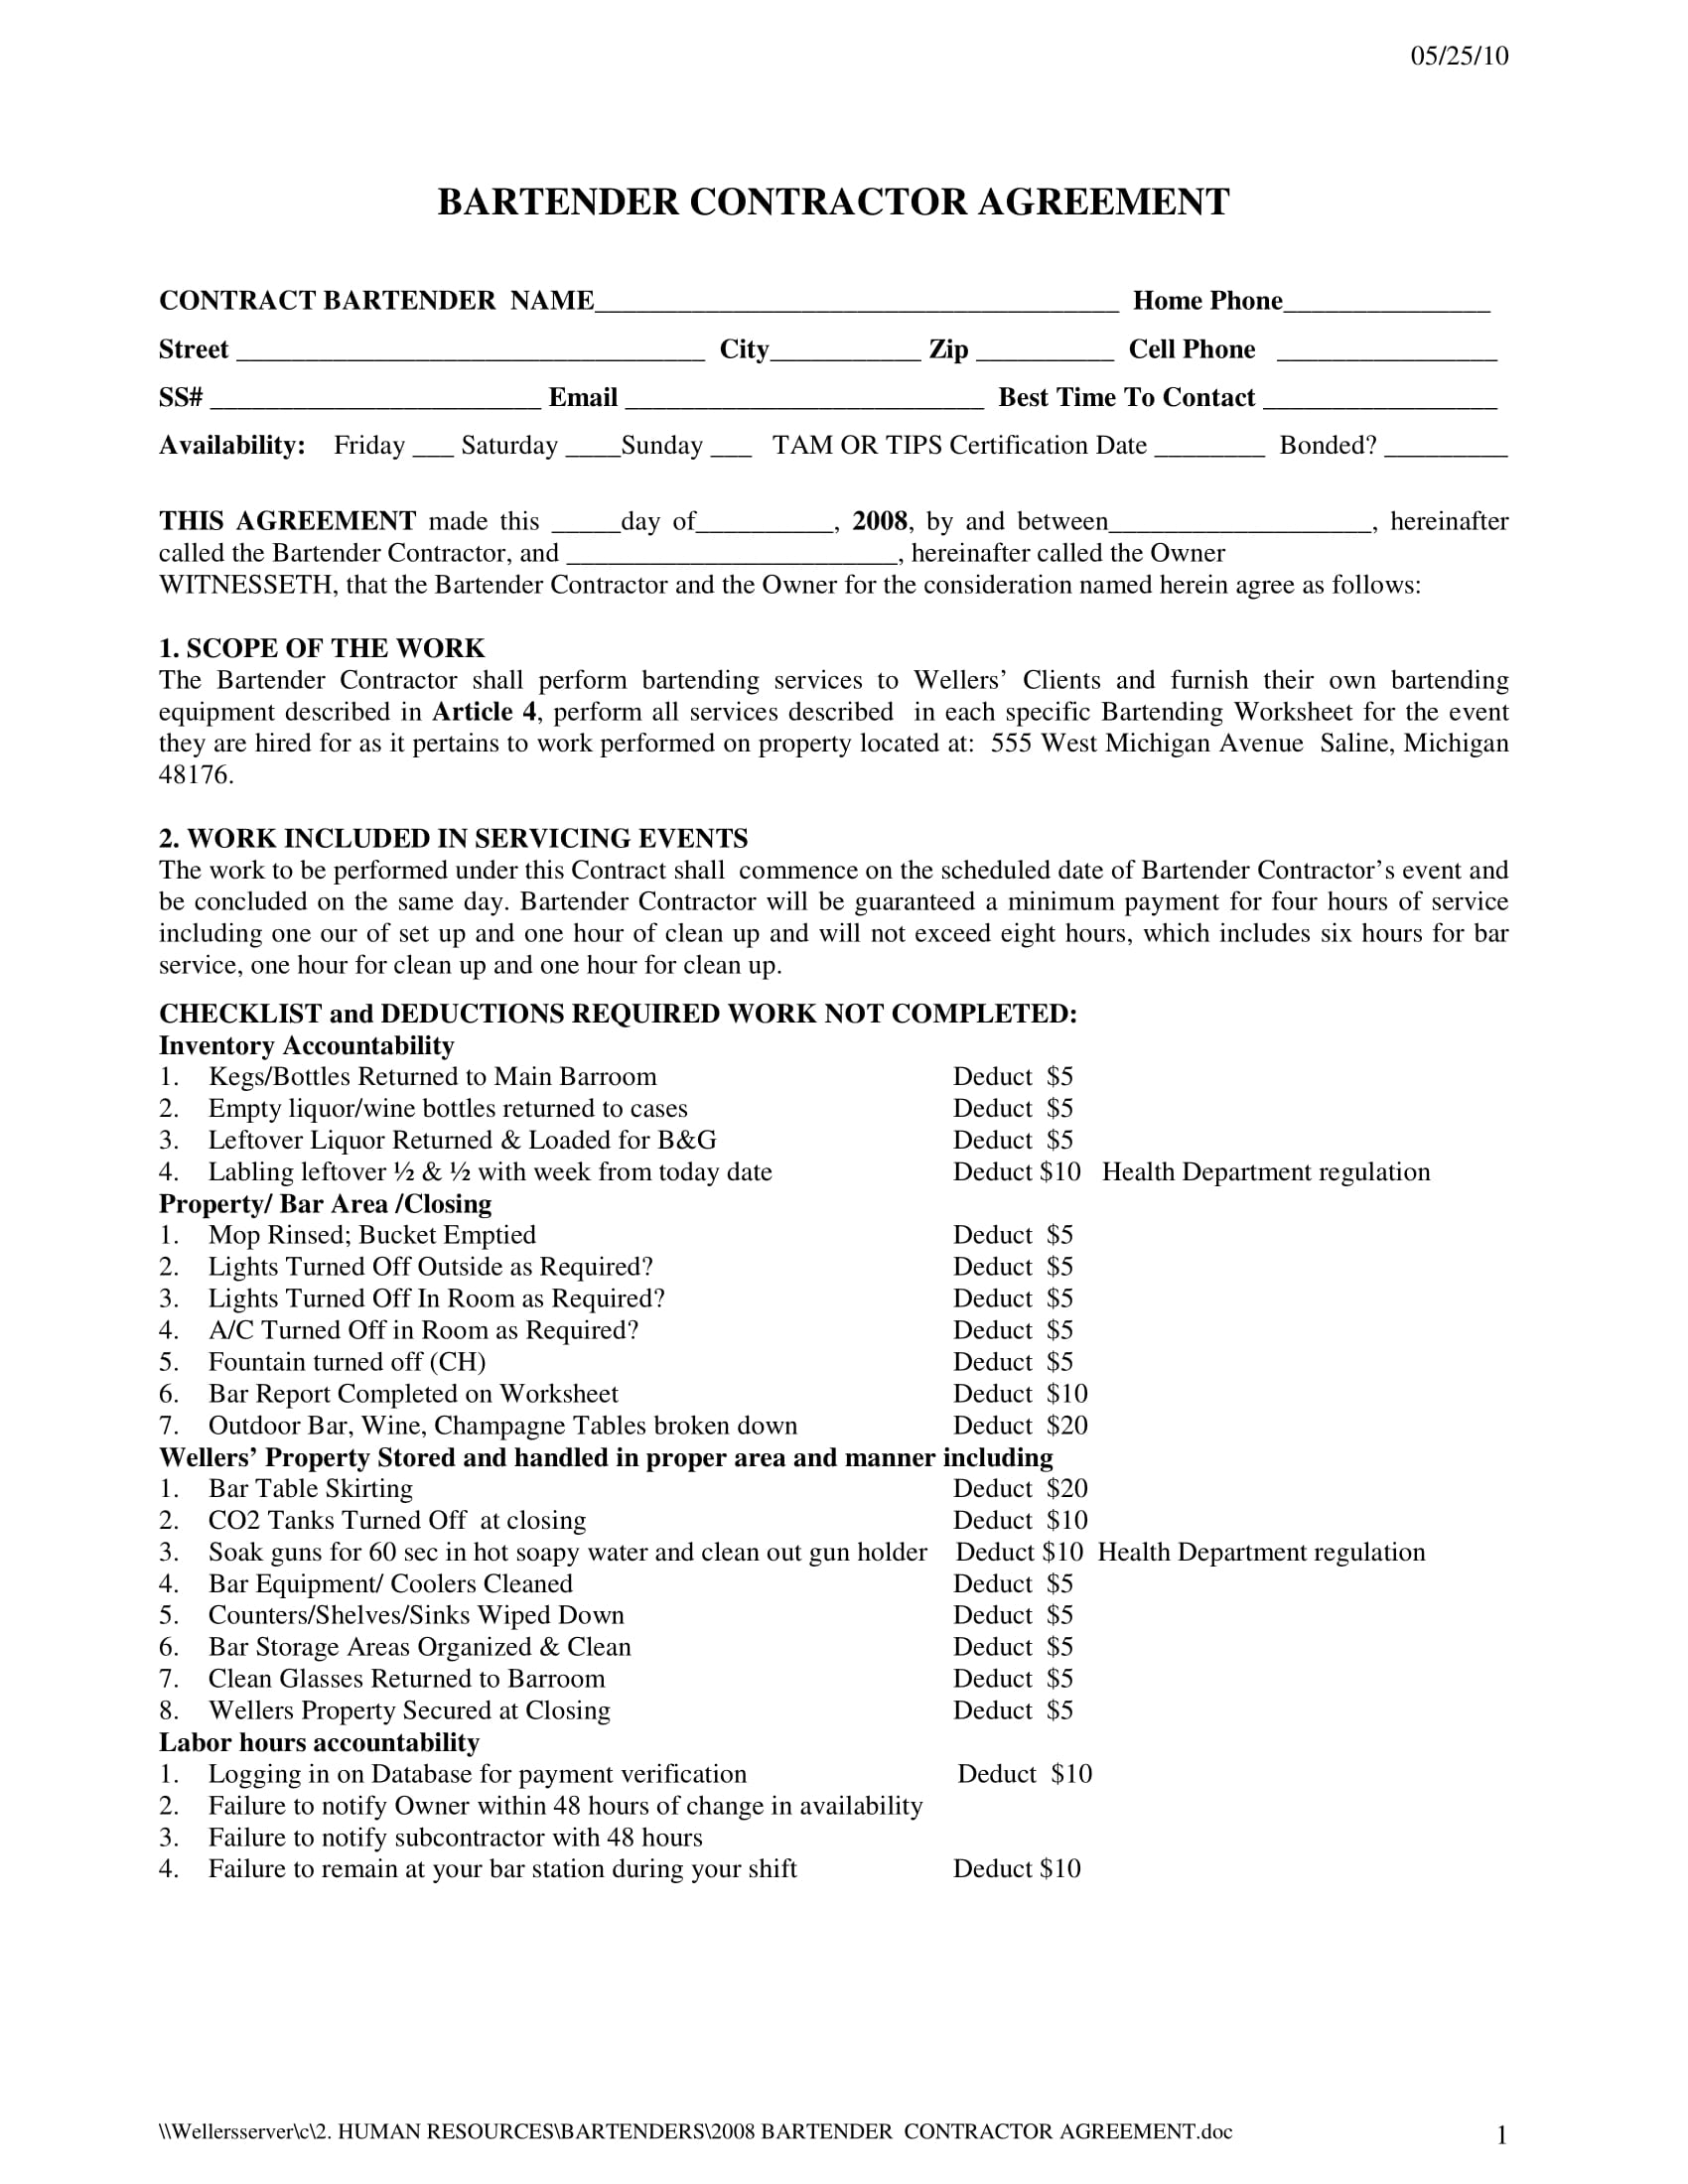 bartender contractor agreement form 1